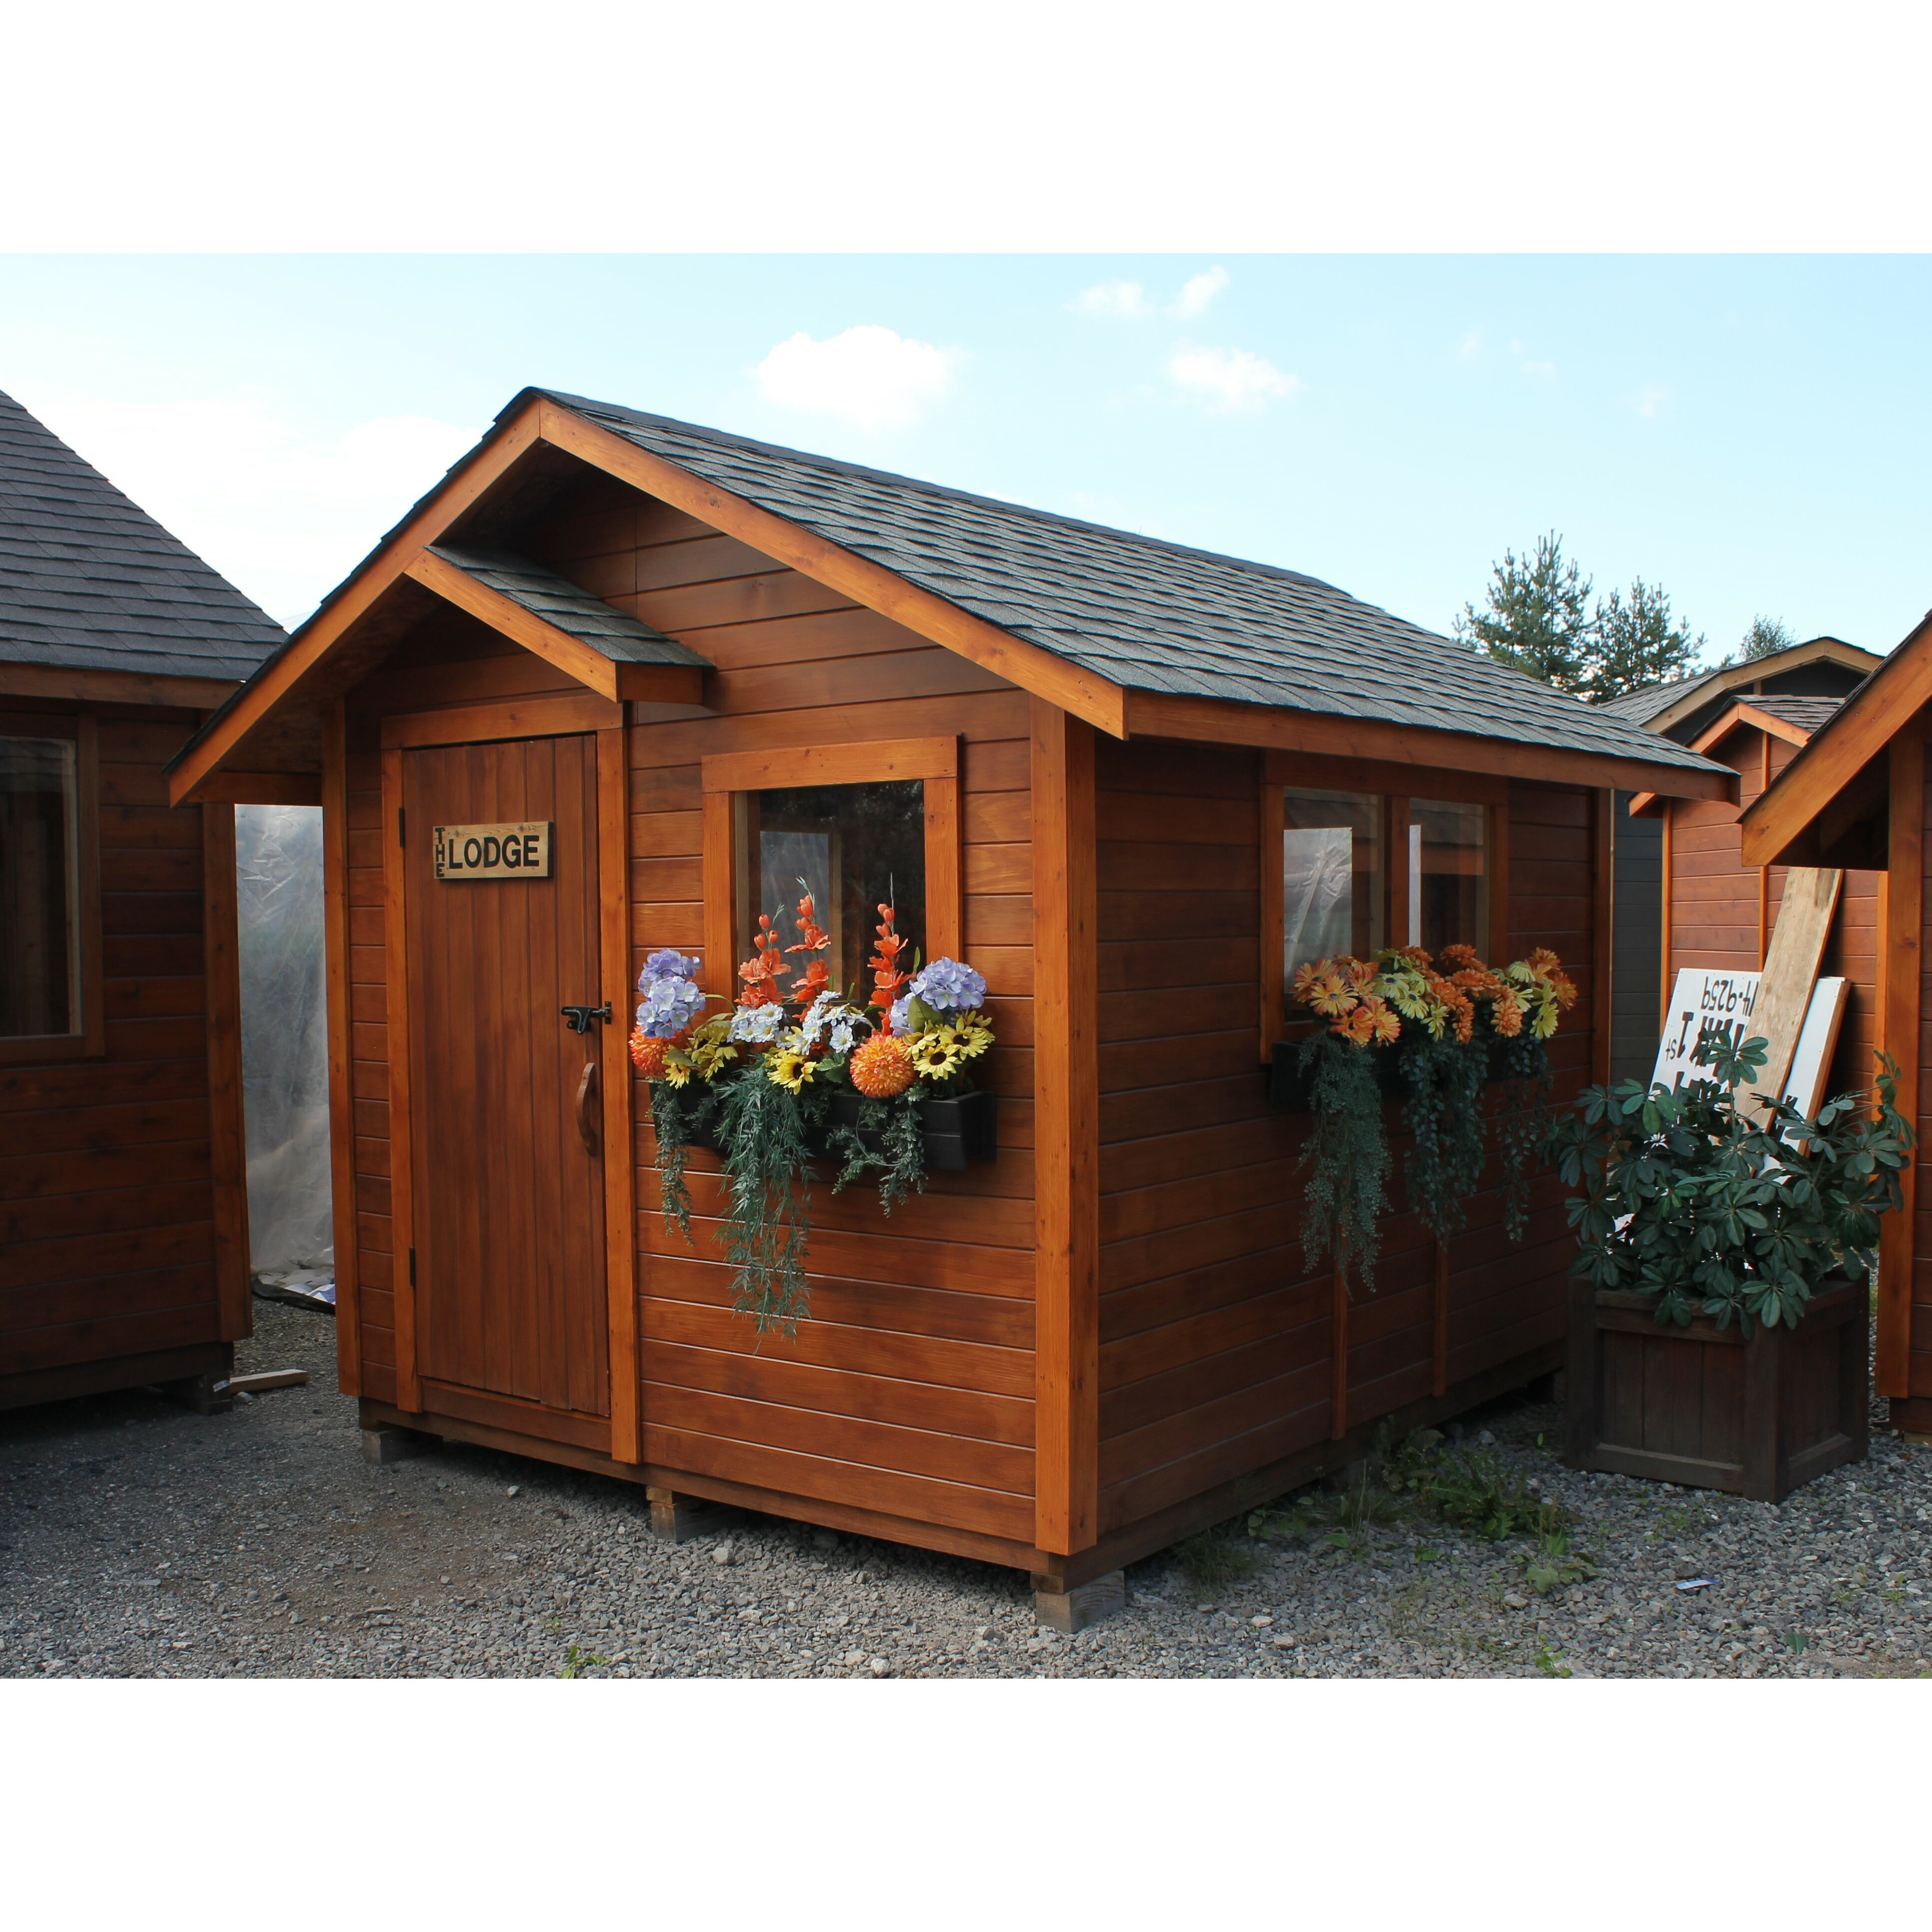 Westviewmanufacturing the lodge 10 ft w x 12 ft d wooden for Portable outside storage sheds